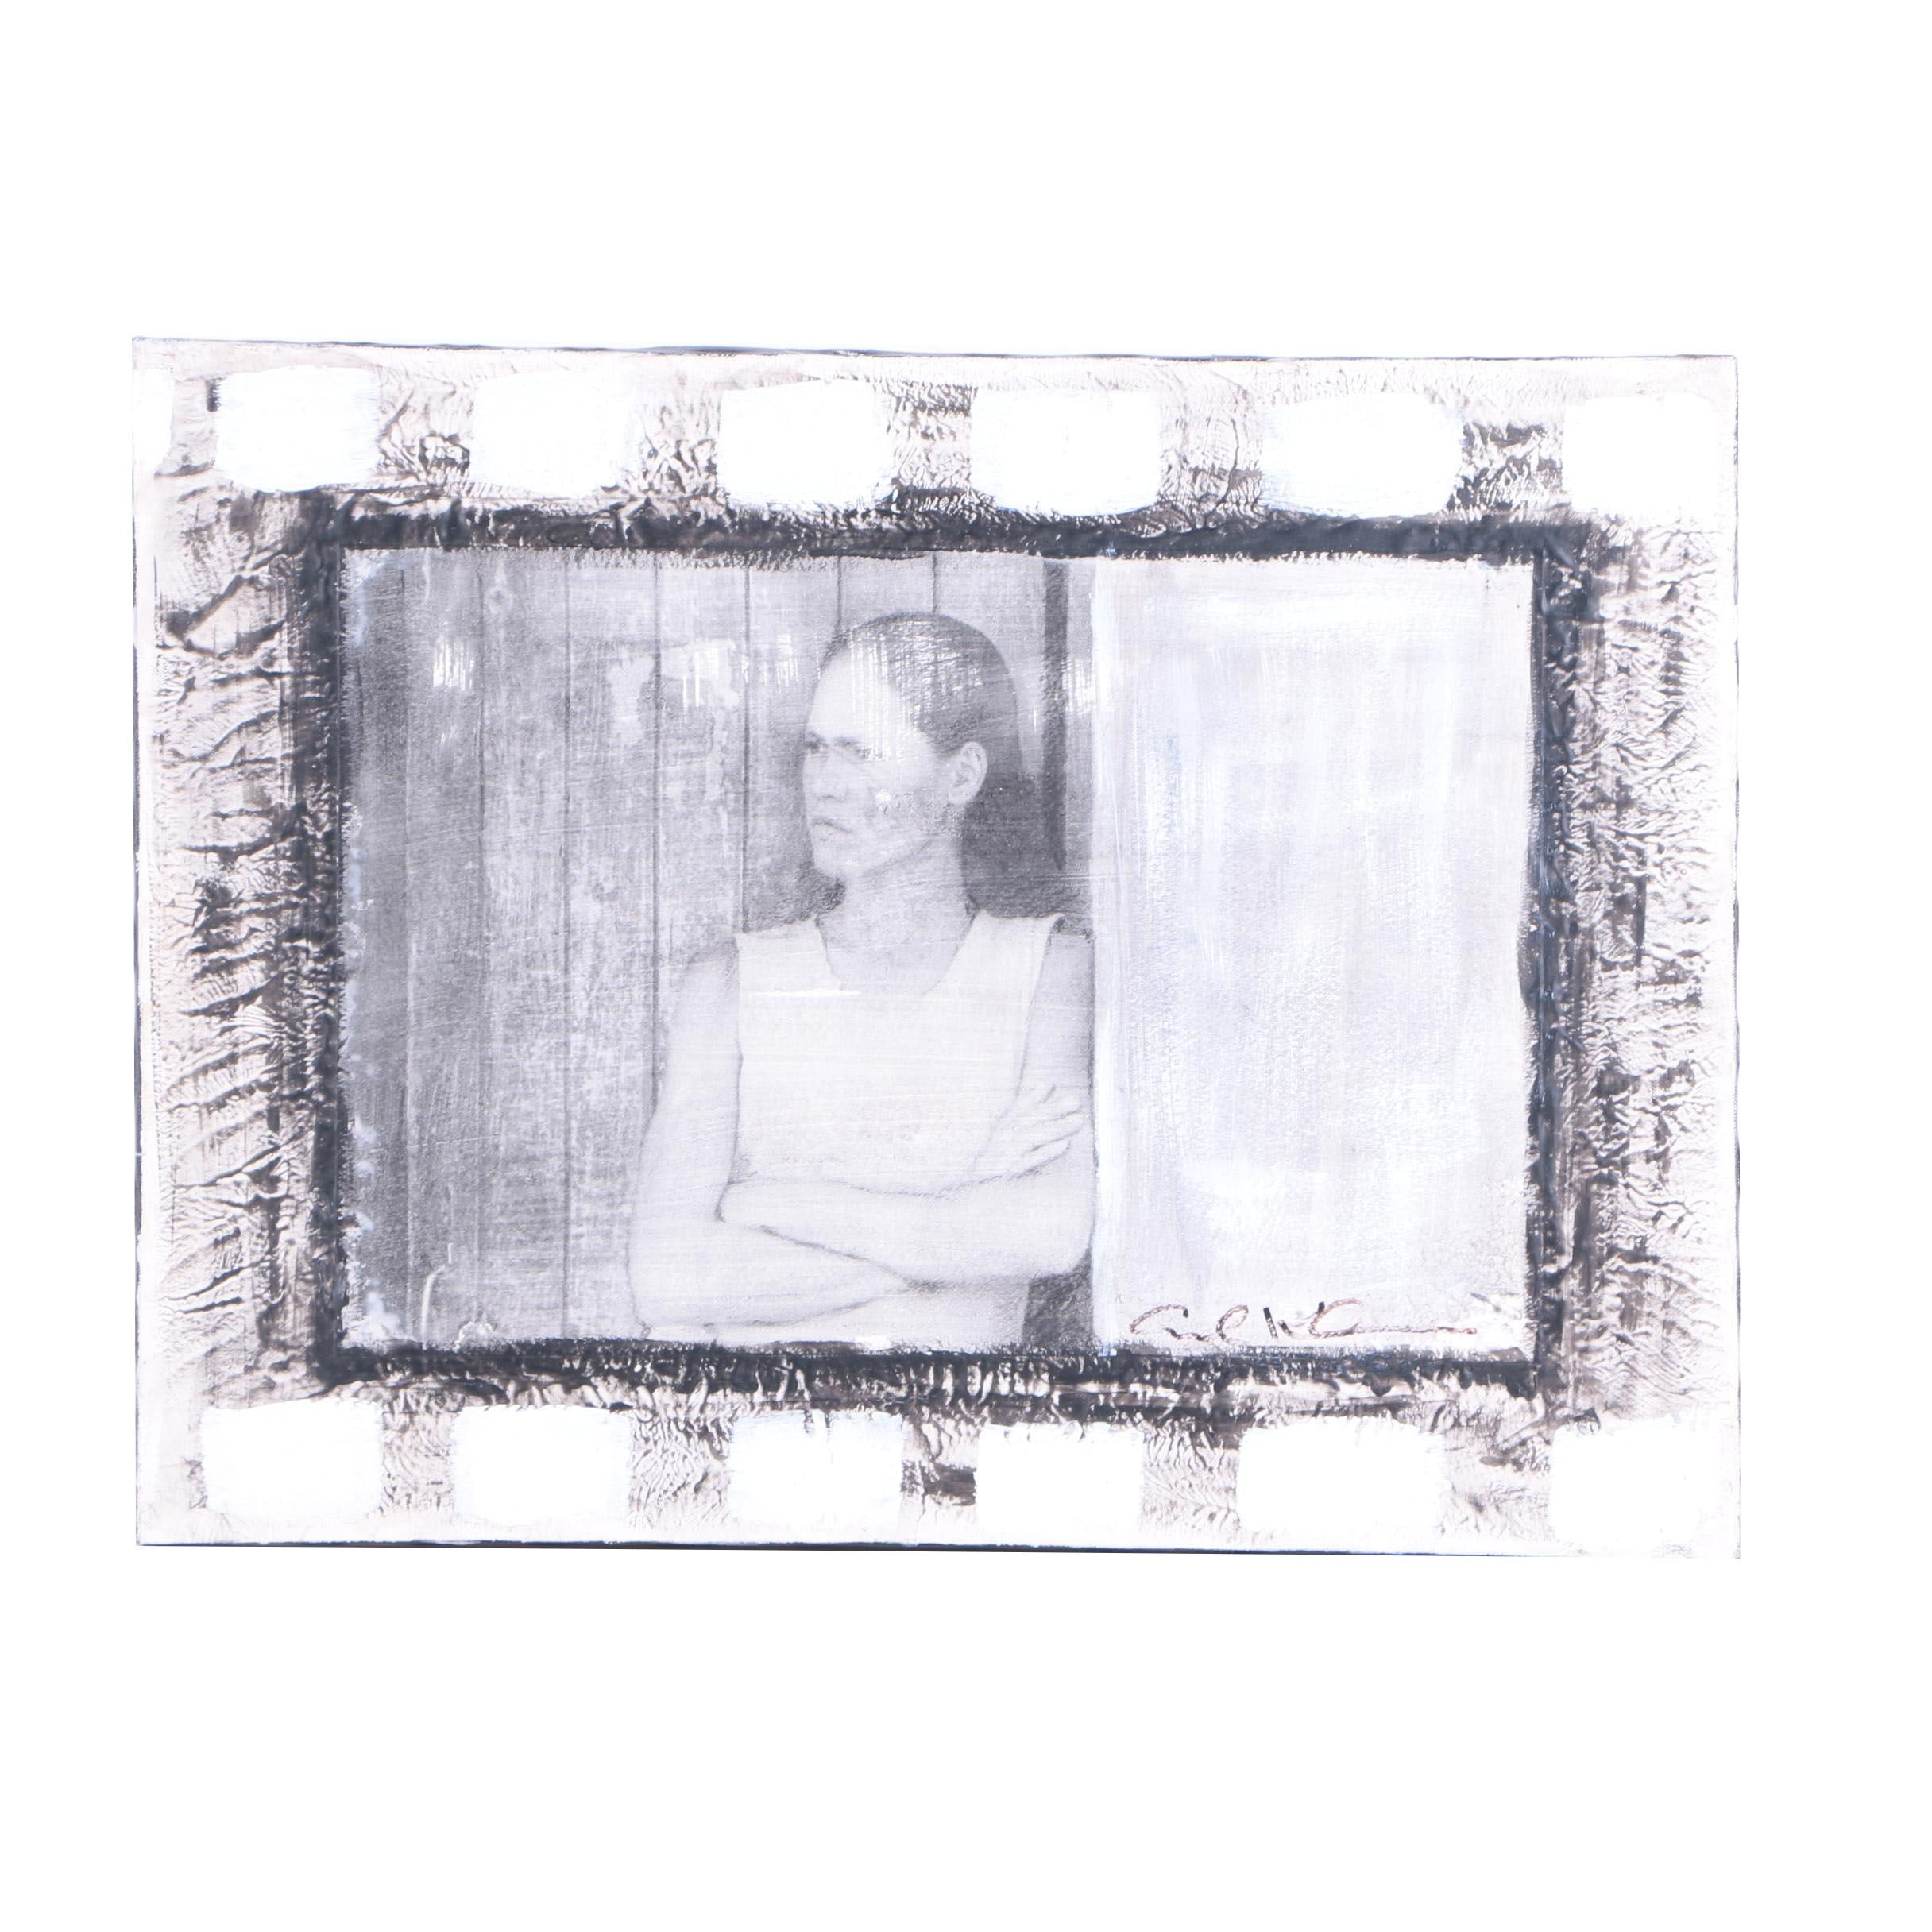 Mixed Media Painting Over Photo Transfer Portrait of Woman with Folded Arms